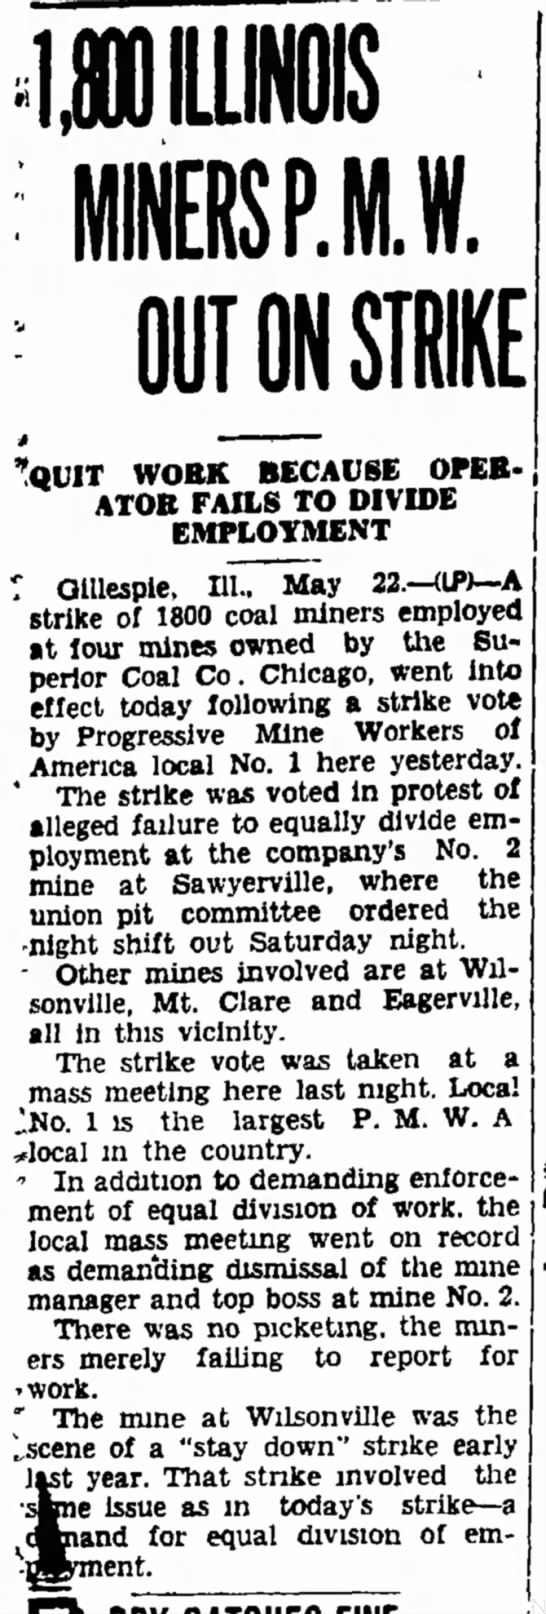 Miners strike 1 year later 5/22/39 -